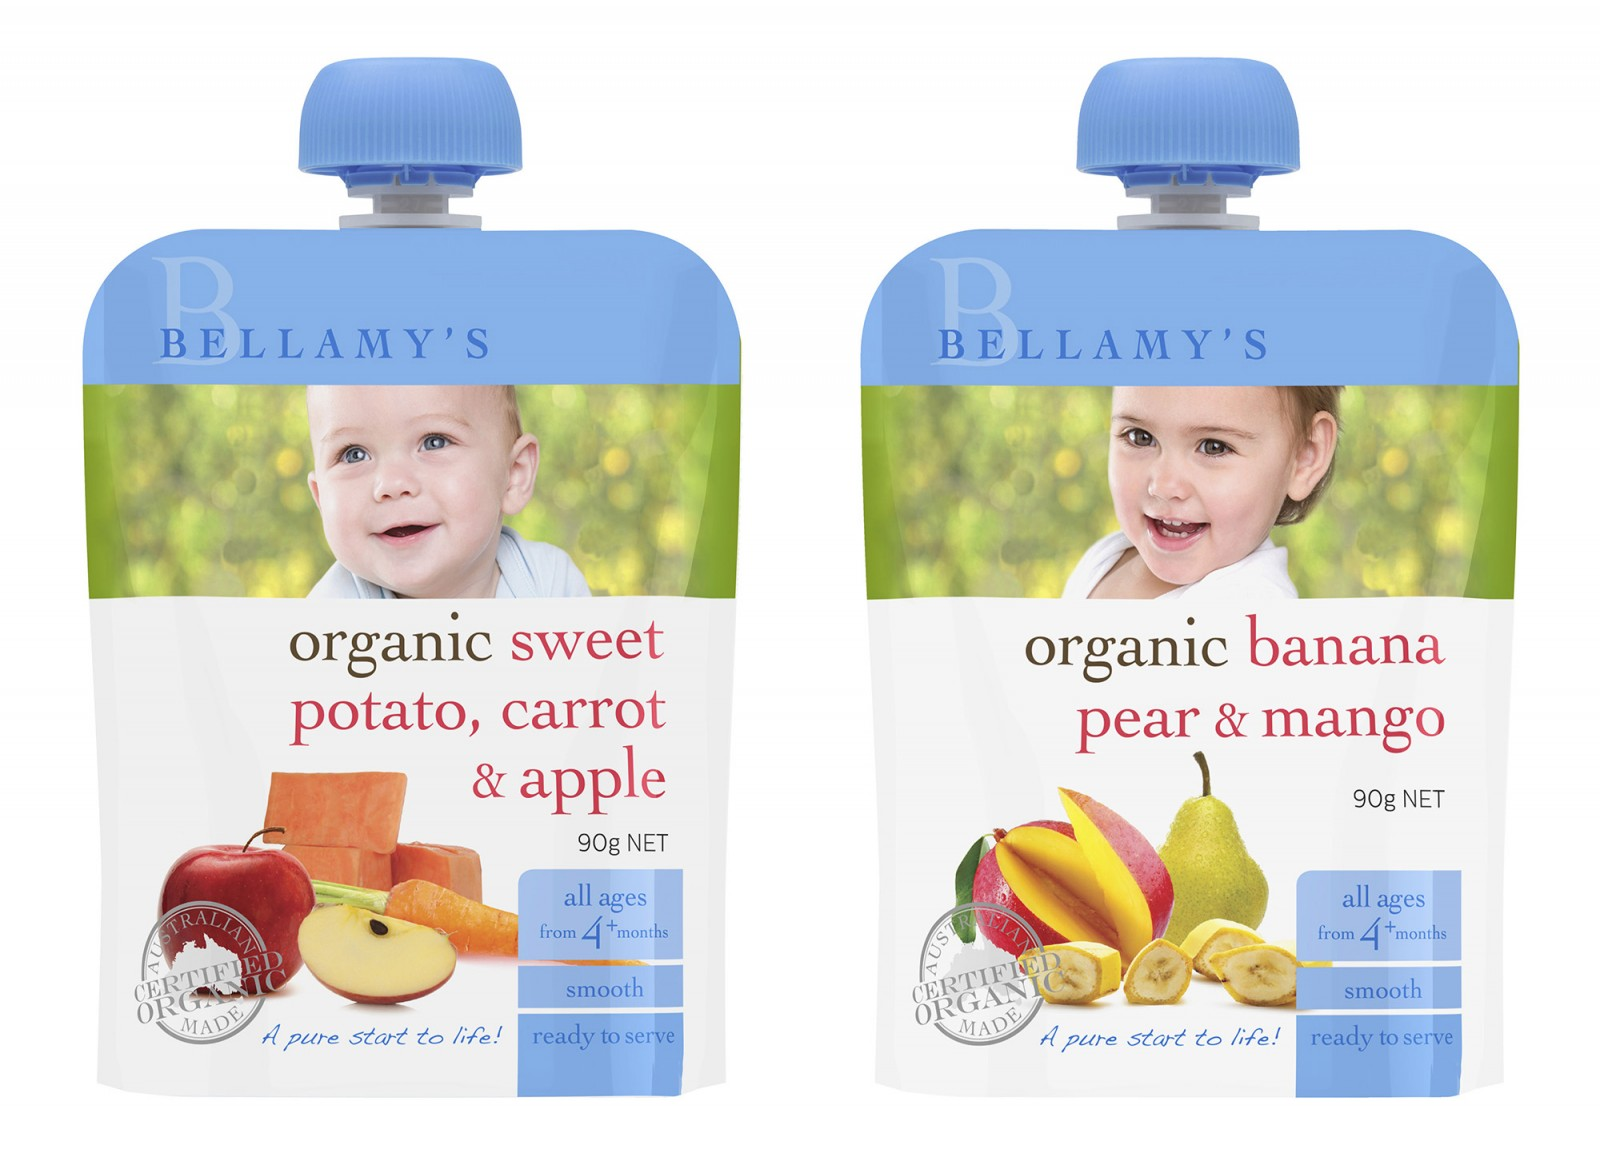 Latest packaging photography work for Bellamys Organic photographed in our Sydney studio in Leichhardt using amazing kids and baby talent from Cute Kids and Bambini Talent Group. All portraits...